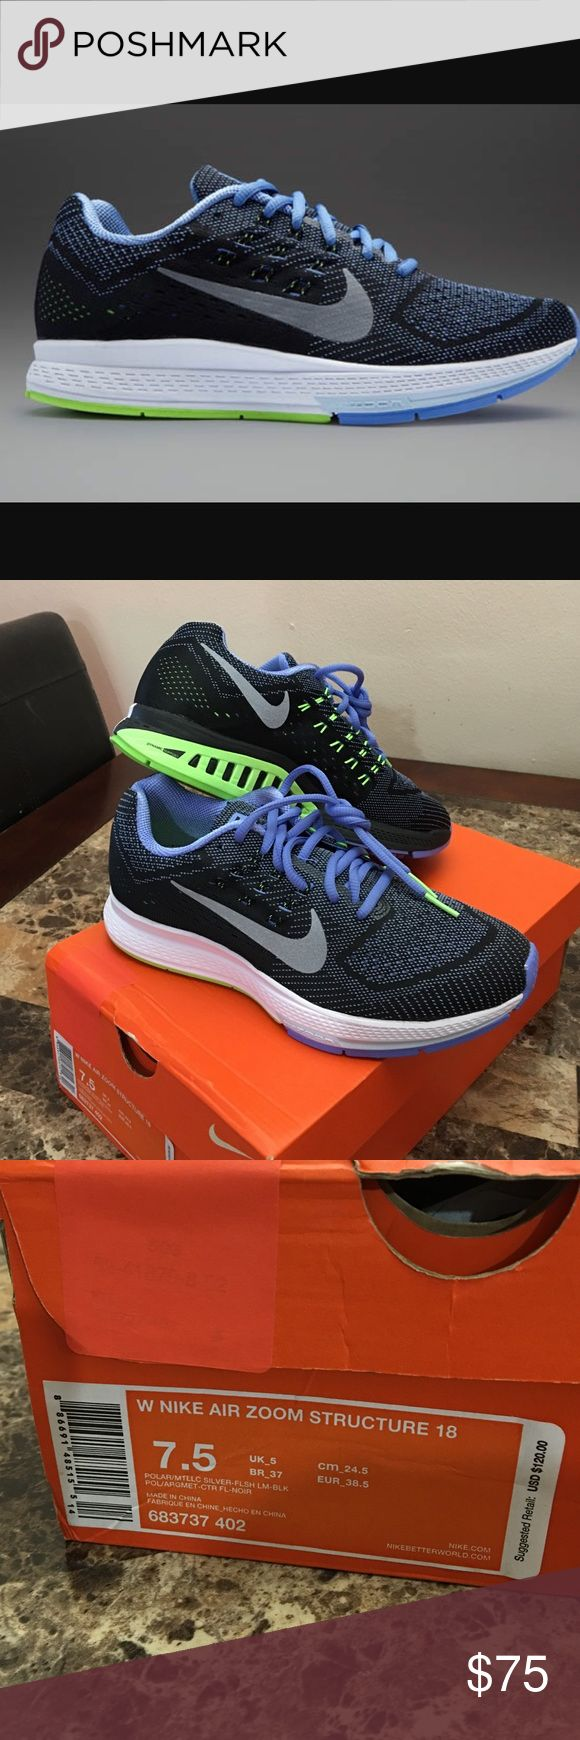 Nike air zoom structure NEW Available in different sizes Nike Shoes Athletic Shoes